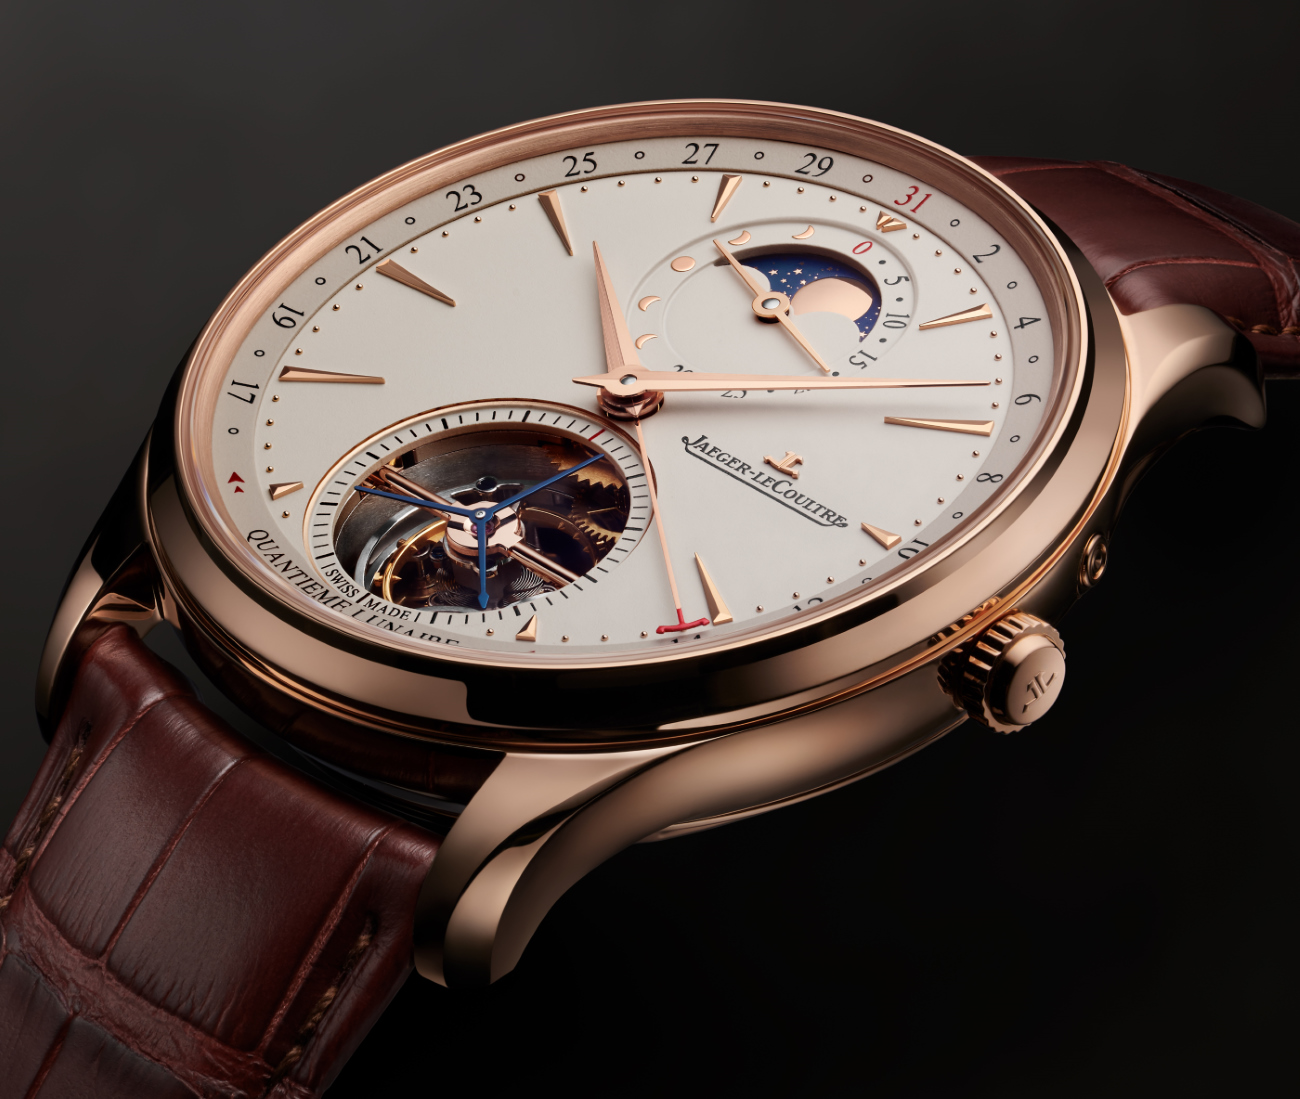 Jaeger_LeCoultre_-master-ut-tourbillonmoon1-_europa_star_watch_magazine_2020